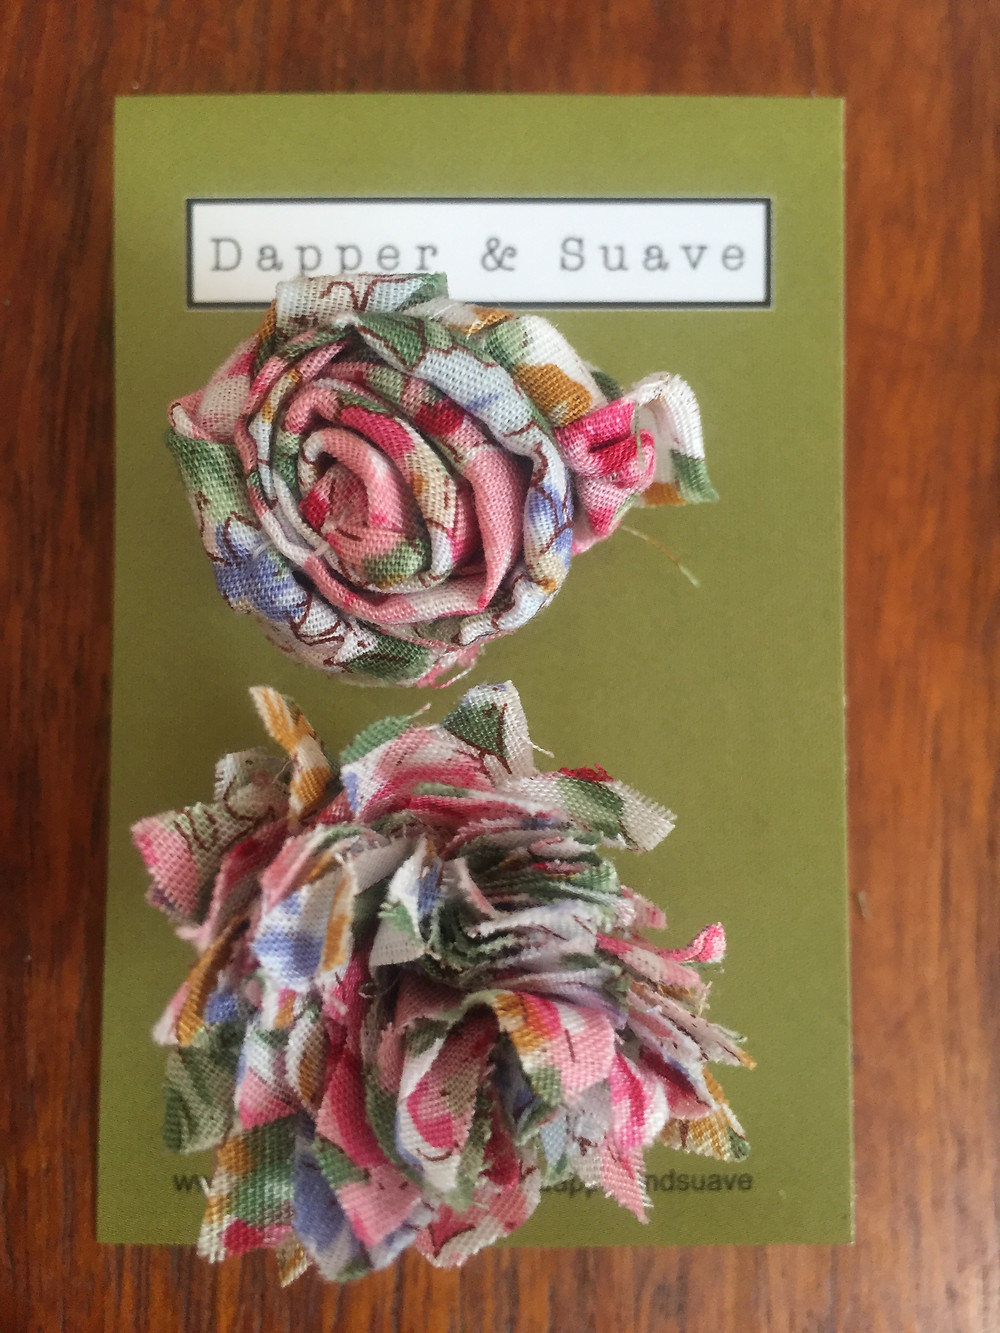 Dapper & Suave Small Floral Lapel Pin